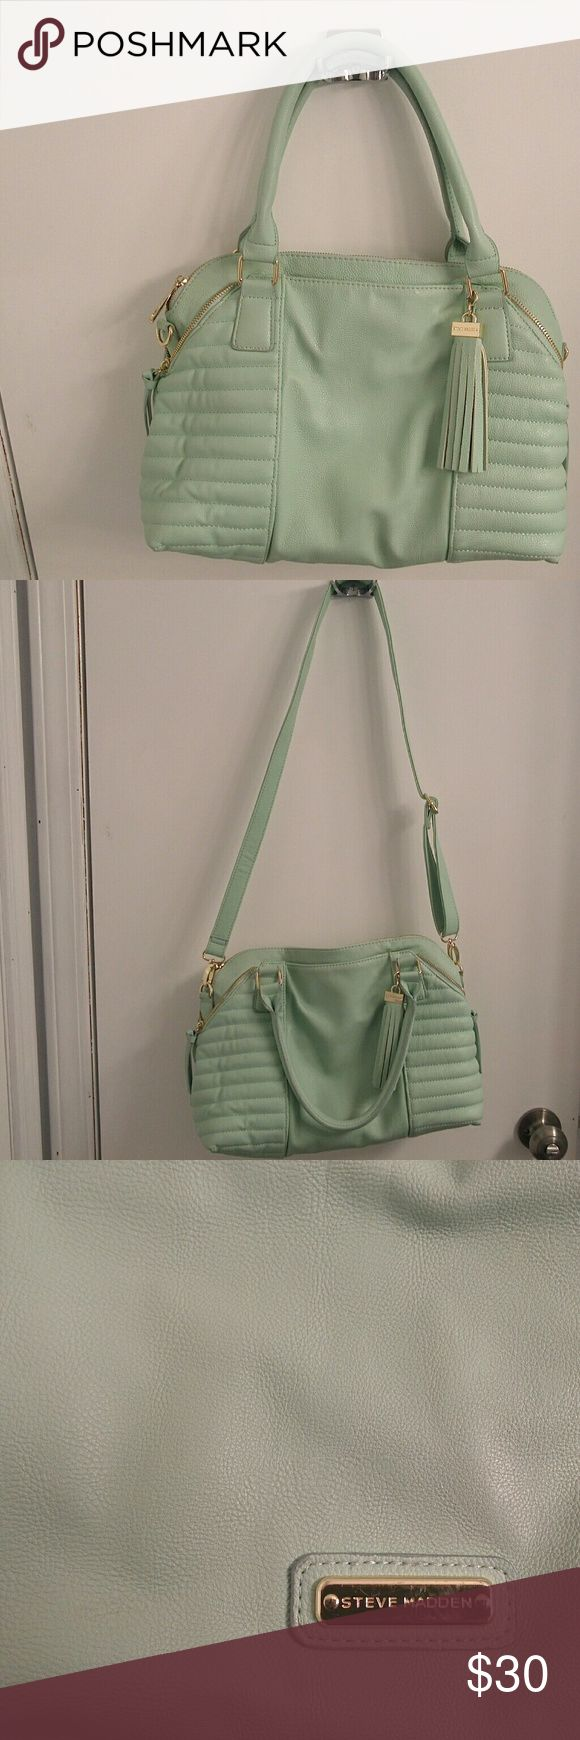 Steve Madden handbag Mint colored handbag with should straps and removable crossover strap. Light wear, shown on the inside. Gold zippers and hooks. Steve Madden Bags Shoulder Bags